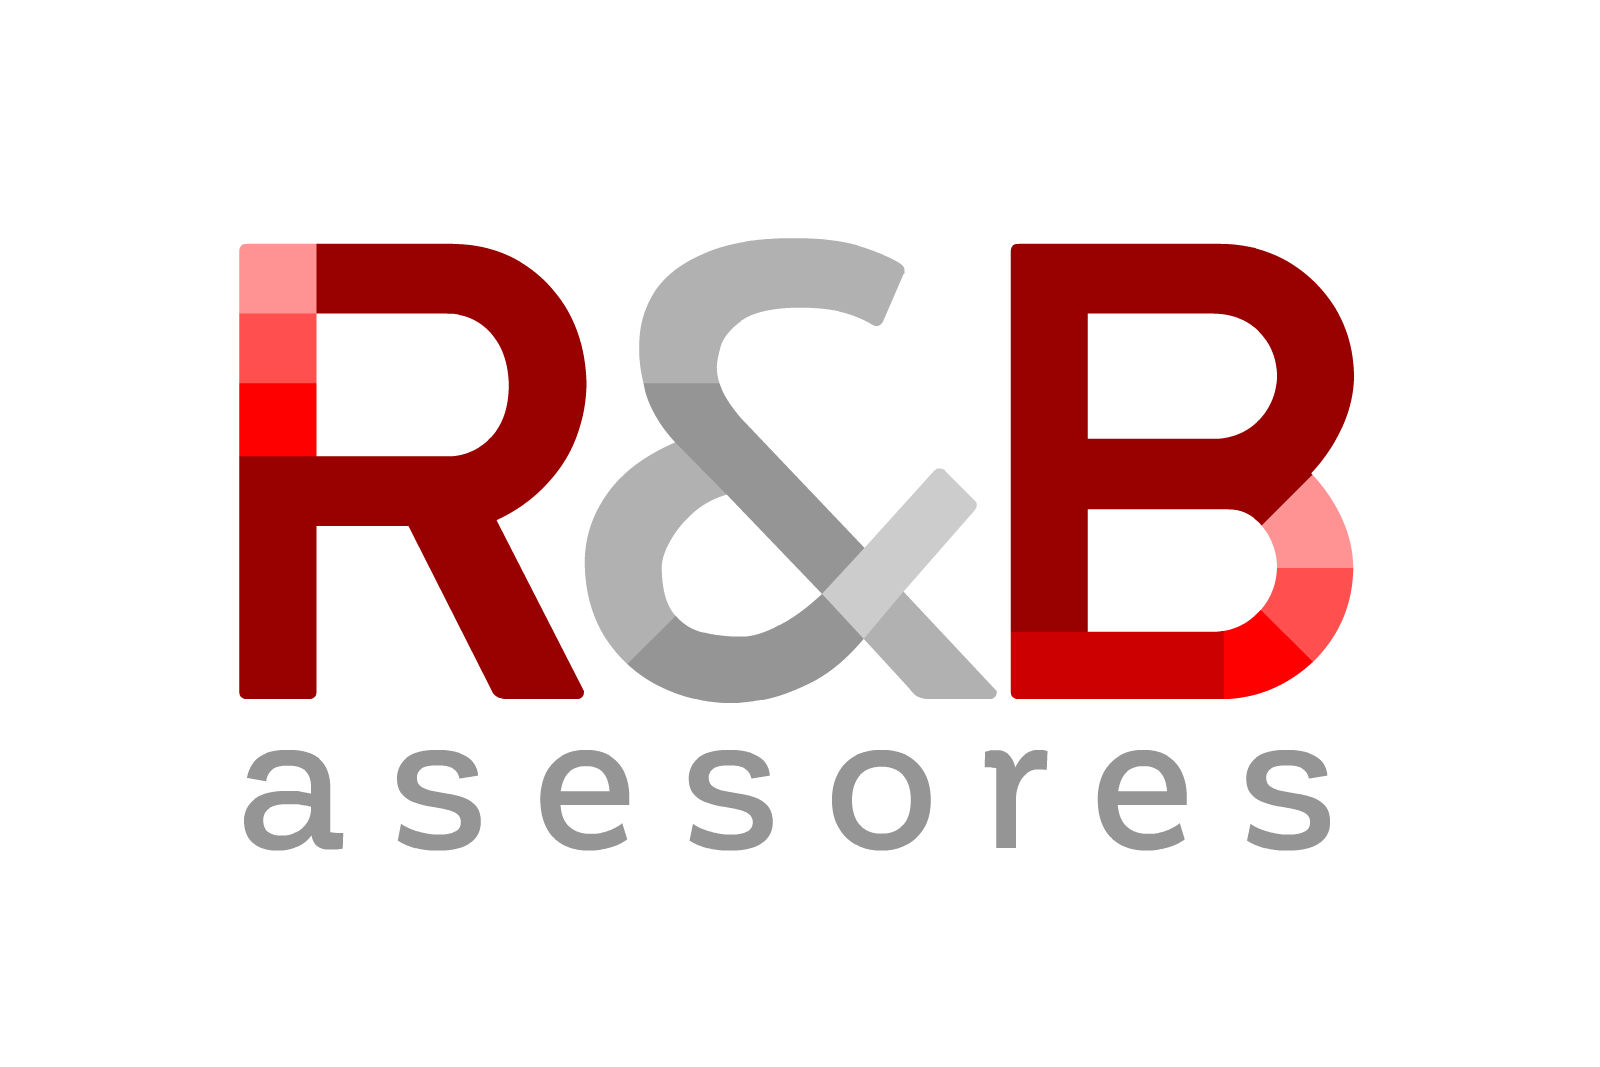 R&B ASESORES